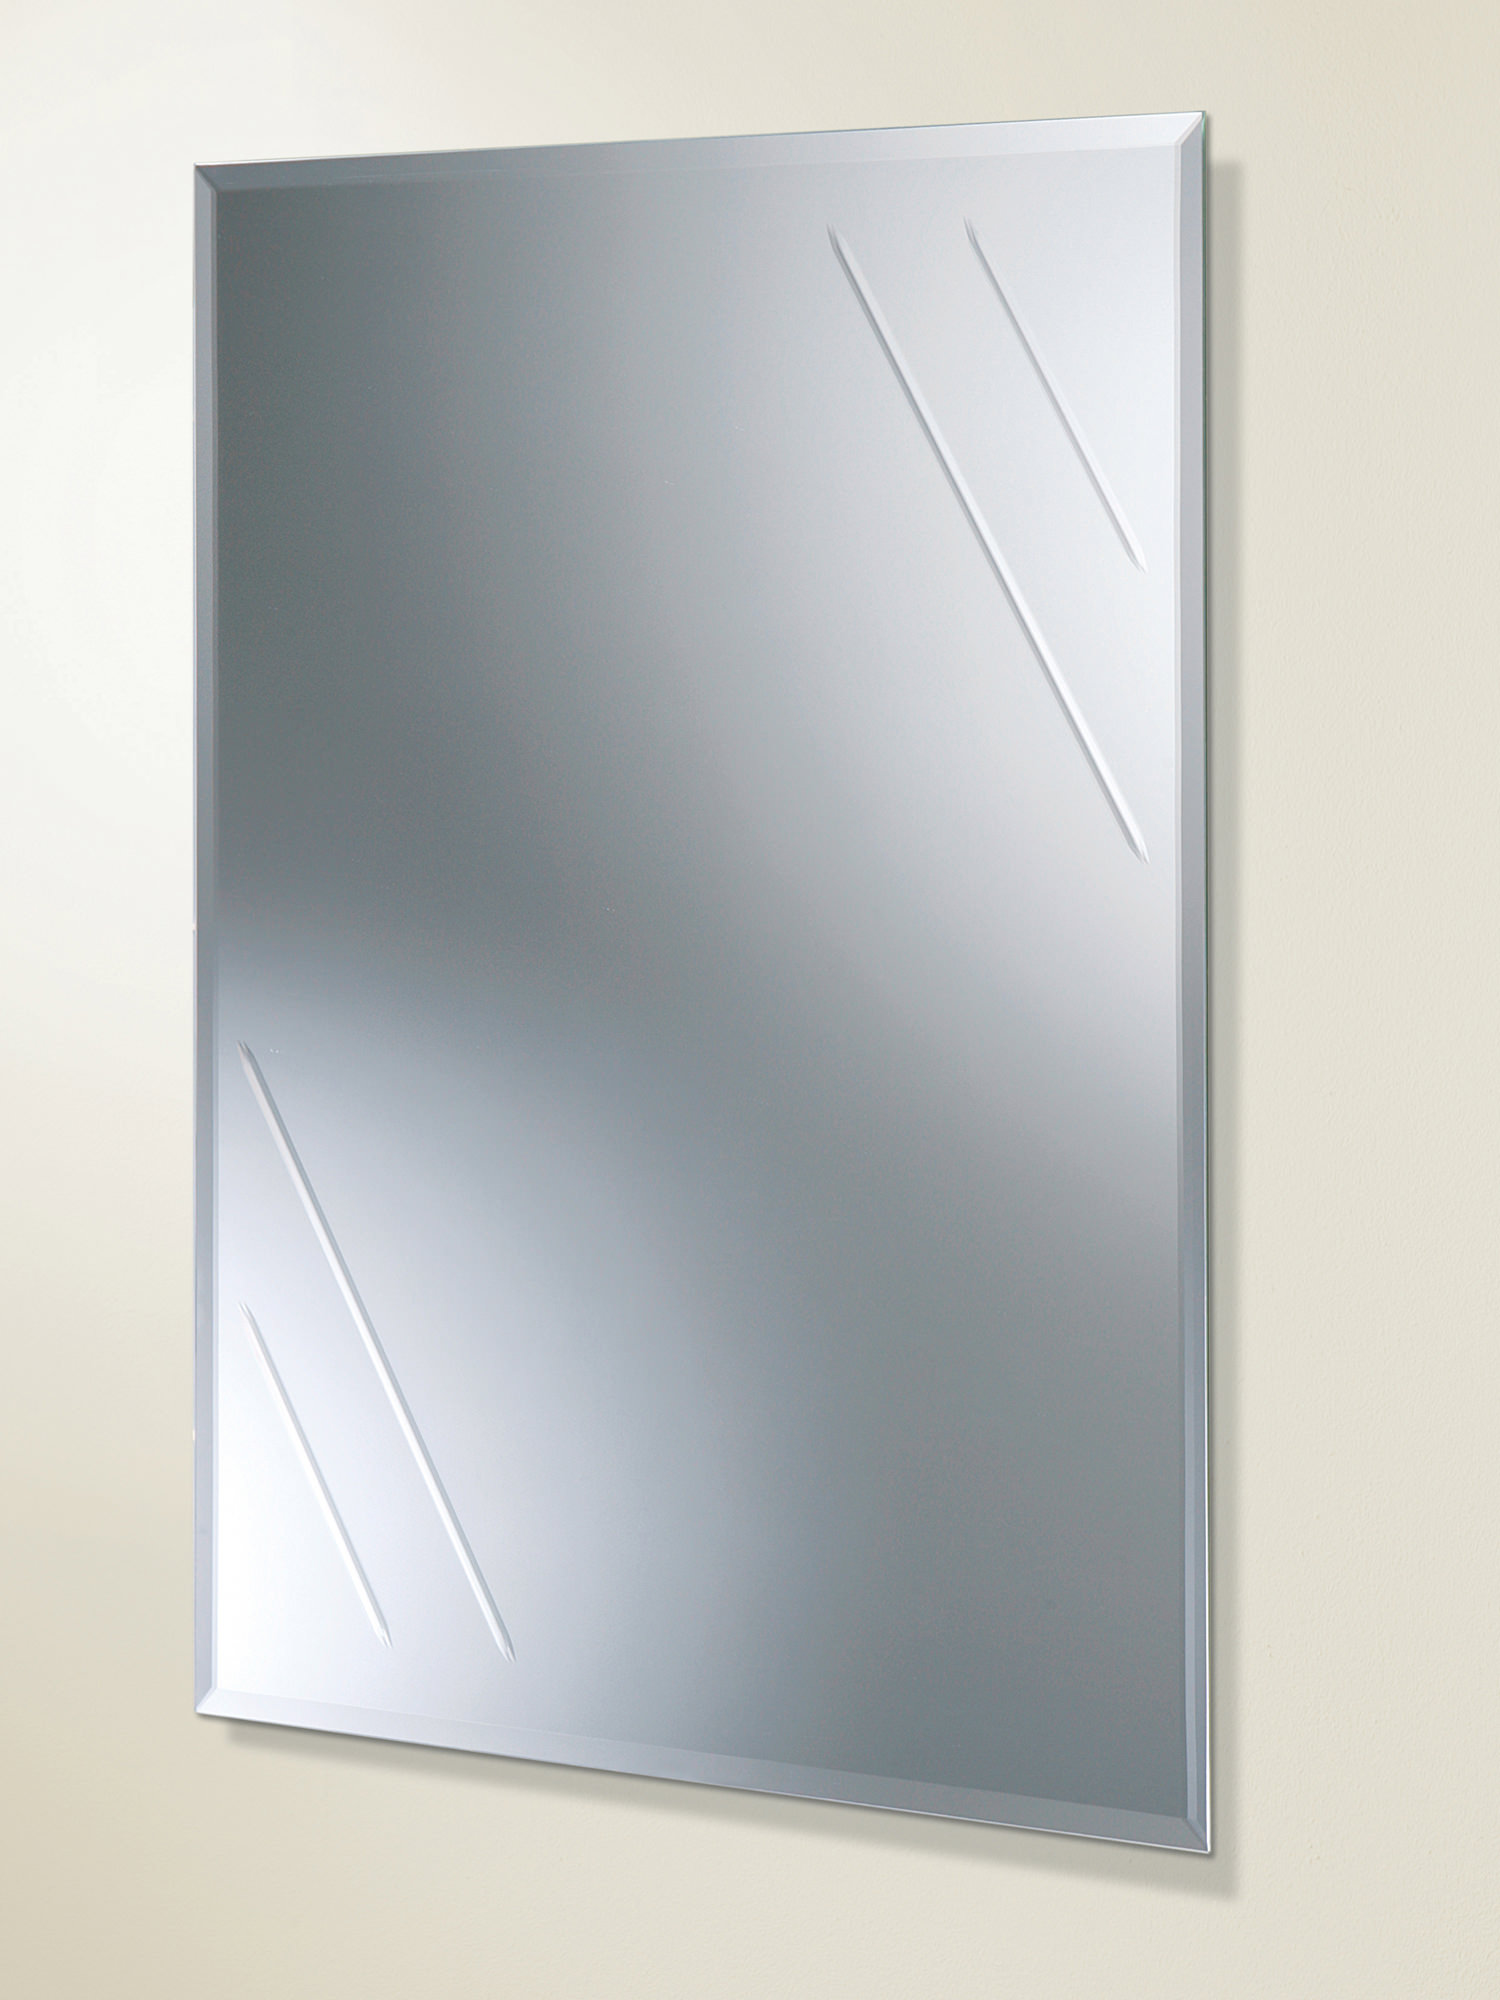 Hib Albina Rectangular Bevelled Edge Bathroom Mirror 61164100